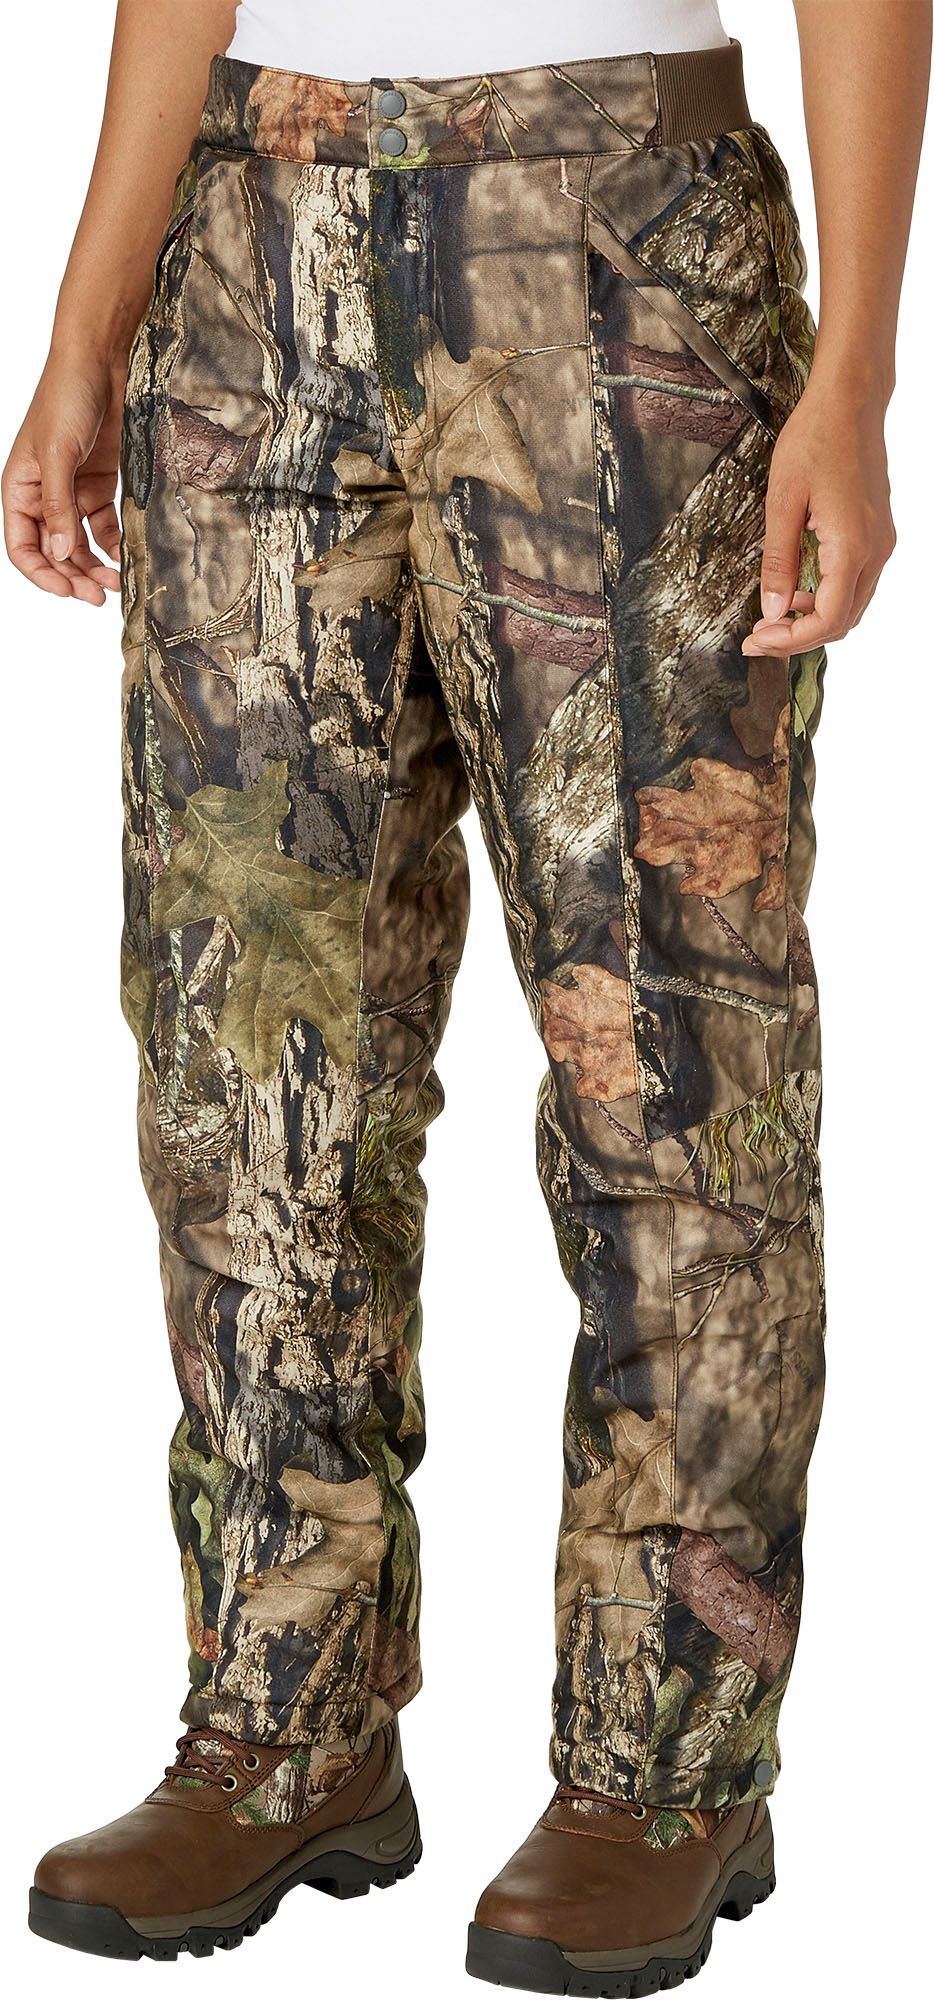 Field & Stream Women's True Pursuit Insulated Hunting Pants, Large, Mossy Oak Country